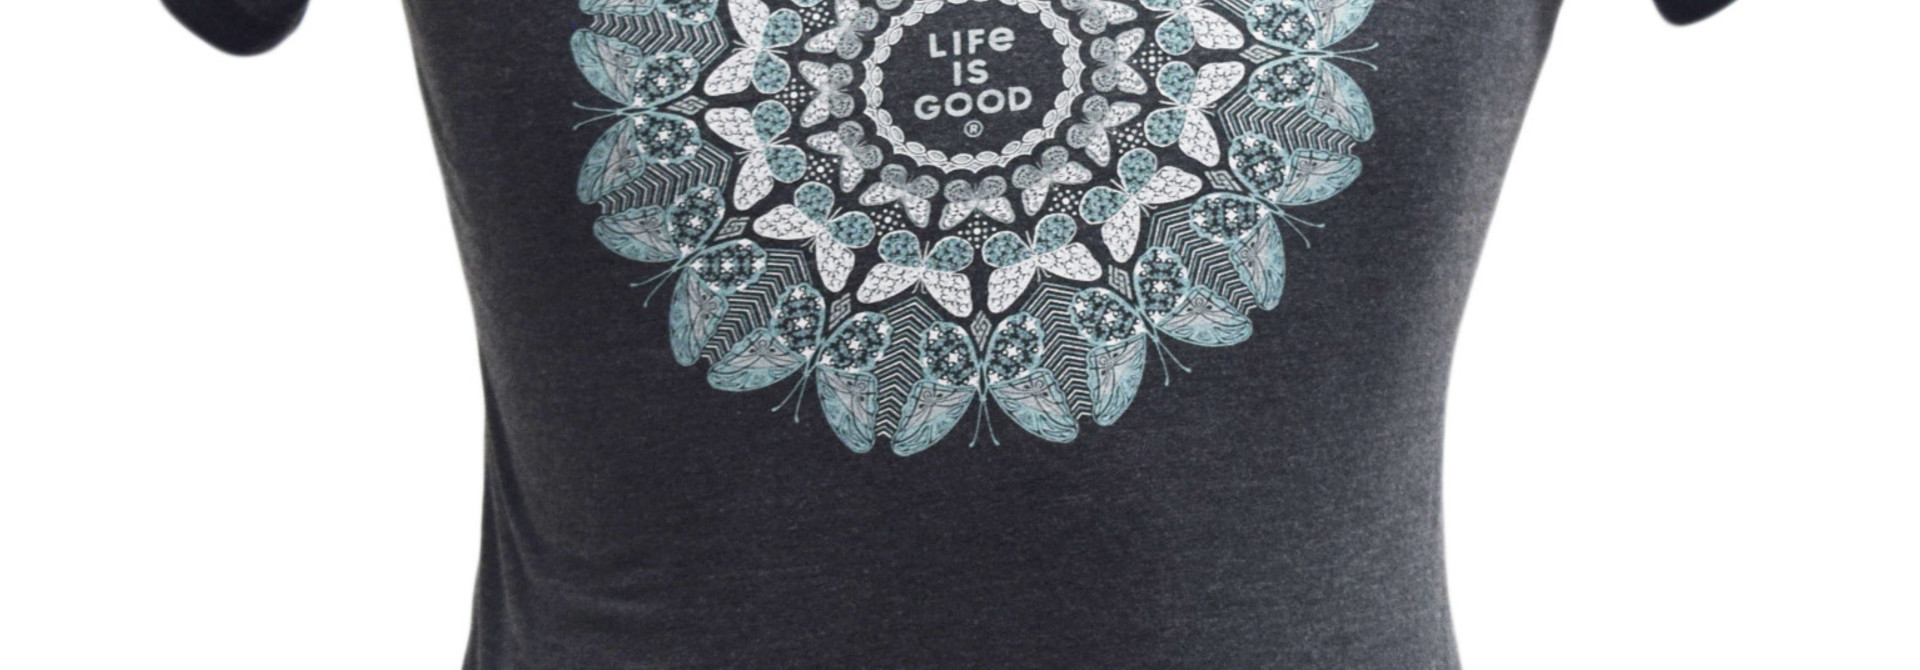 Butterfly Mandala Night Black T-Shirt  Life Is Good